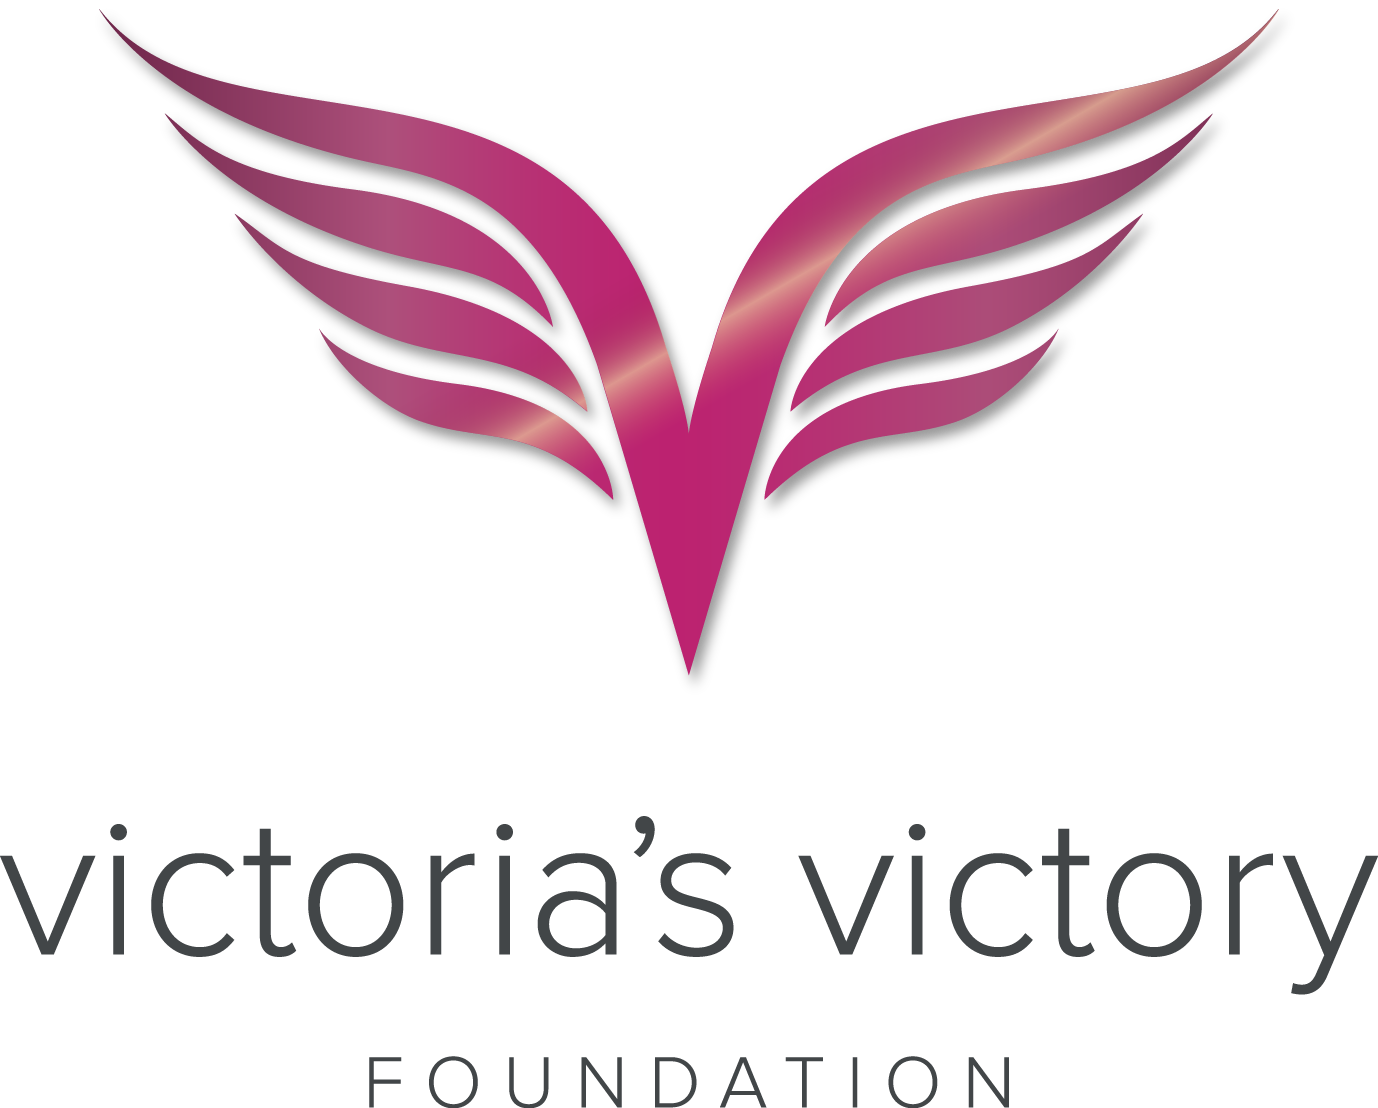 Victoria's Victory Foundation